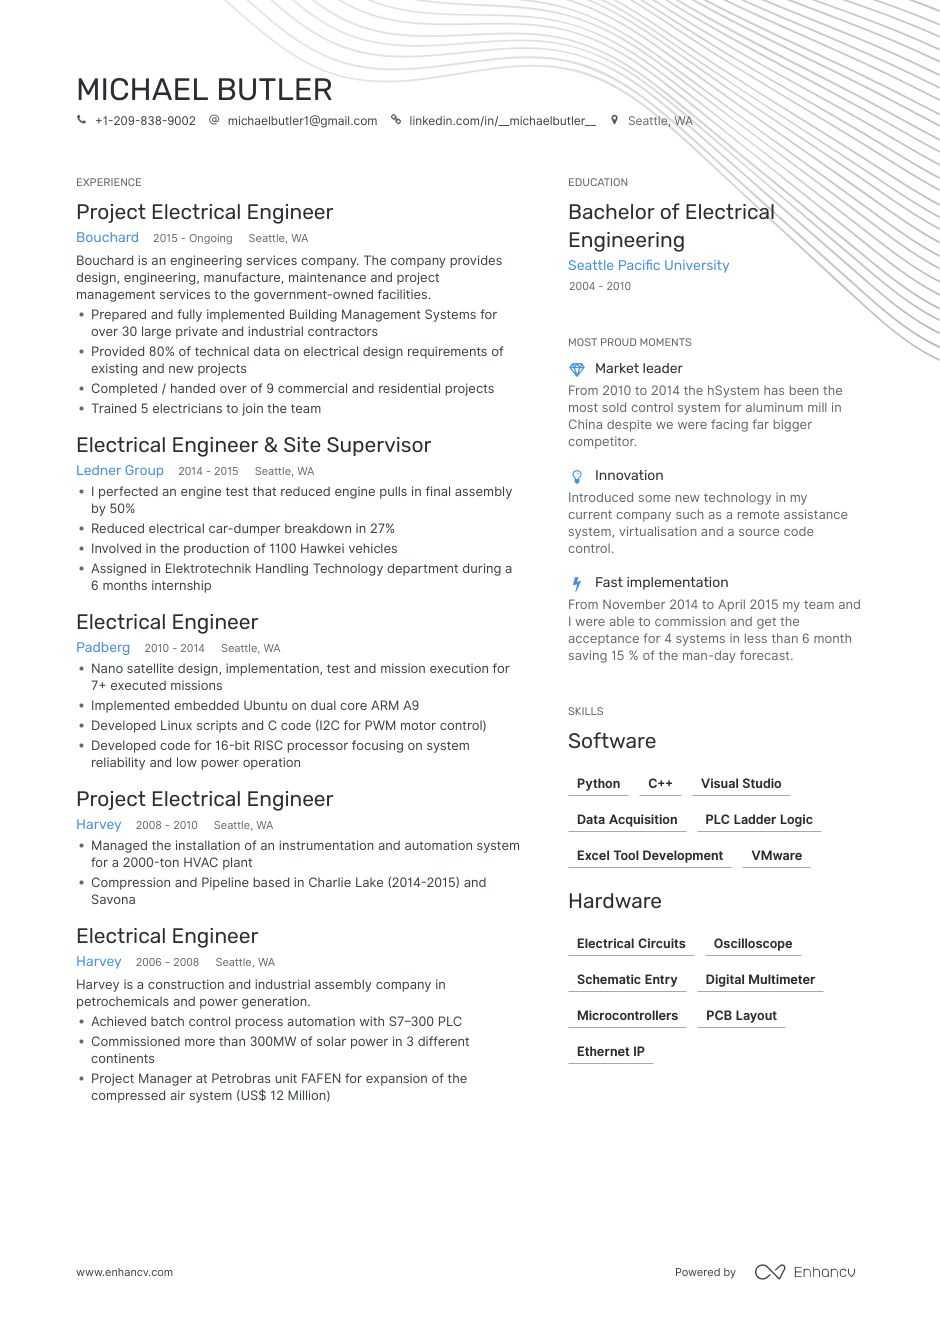 electrical engineer resume examples pro tips featured enhancv for fresher environmental Resume Resume For Fresher Environmental Engineer